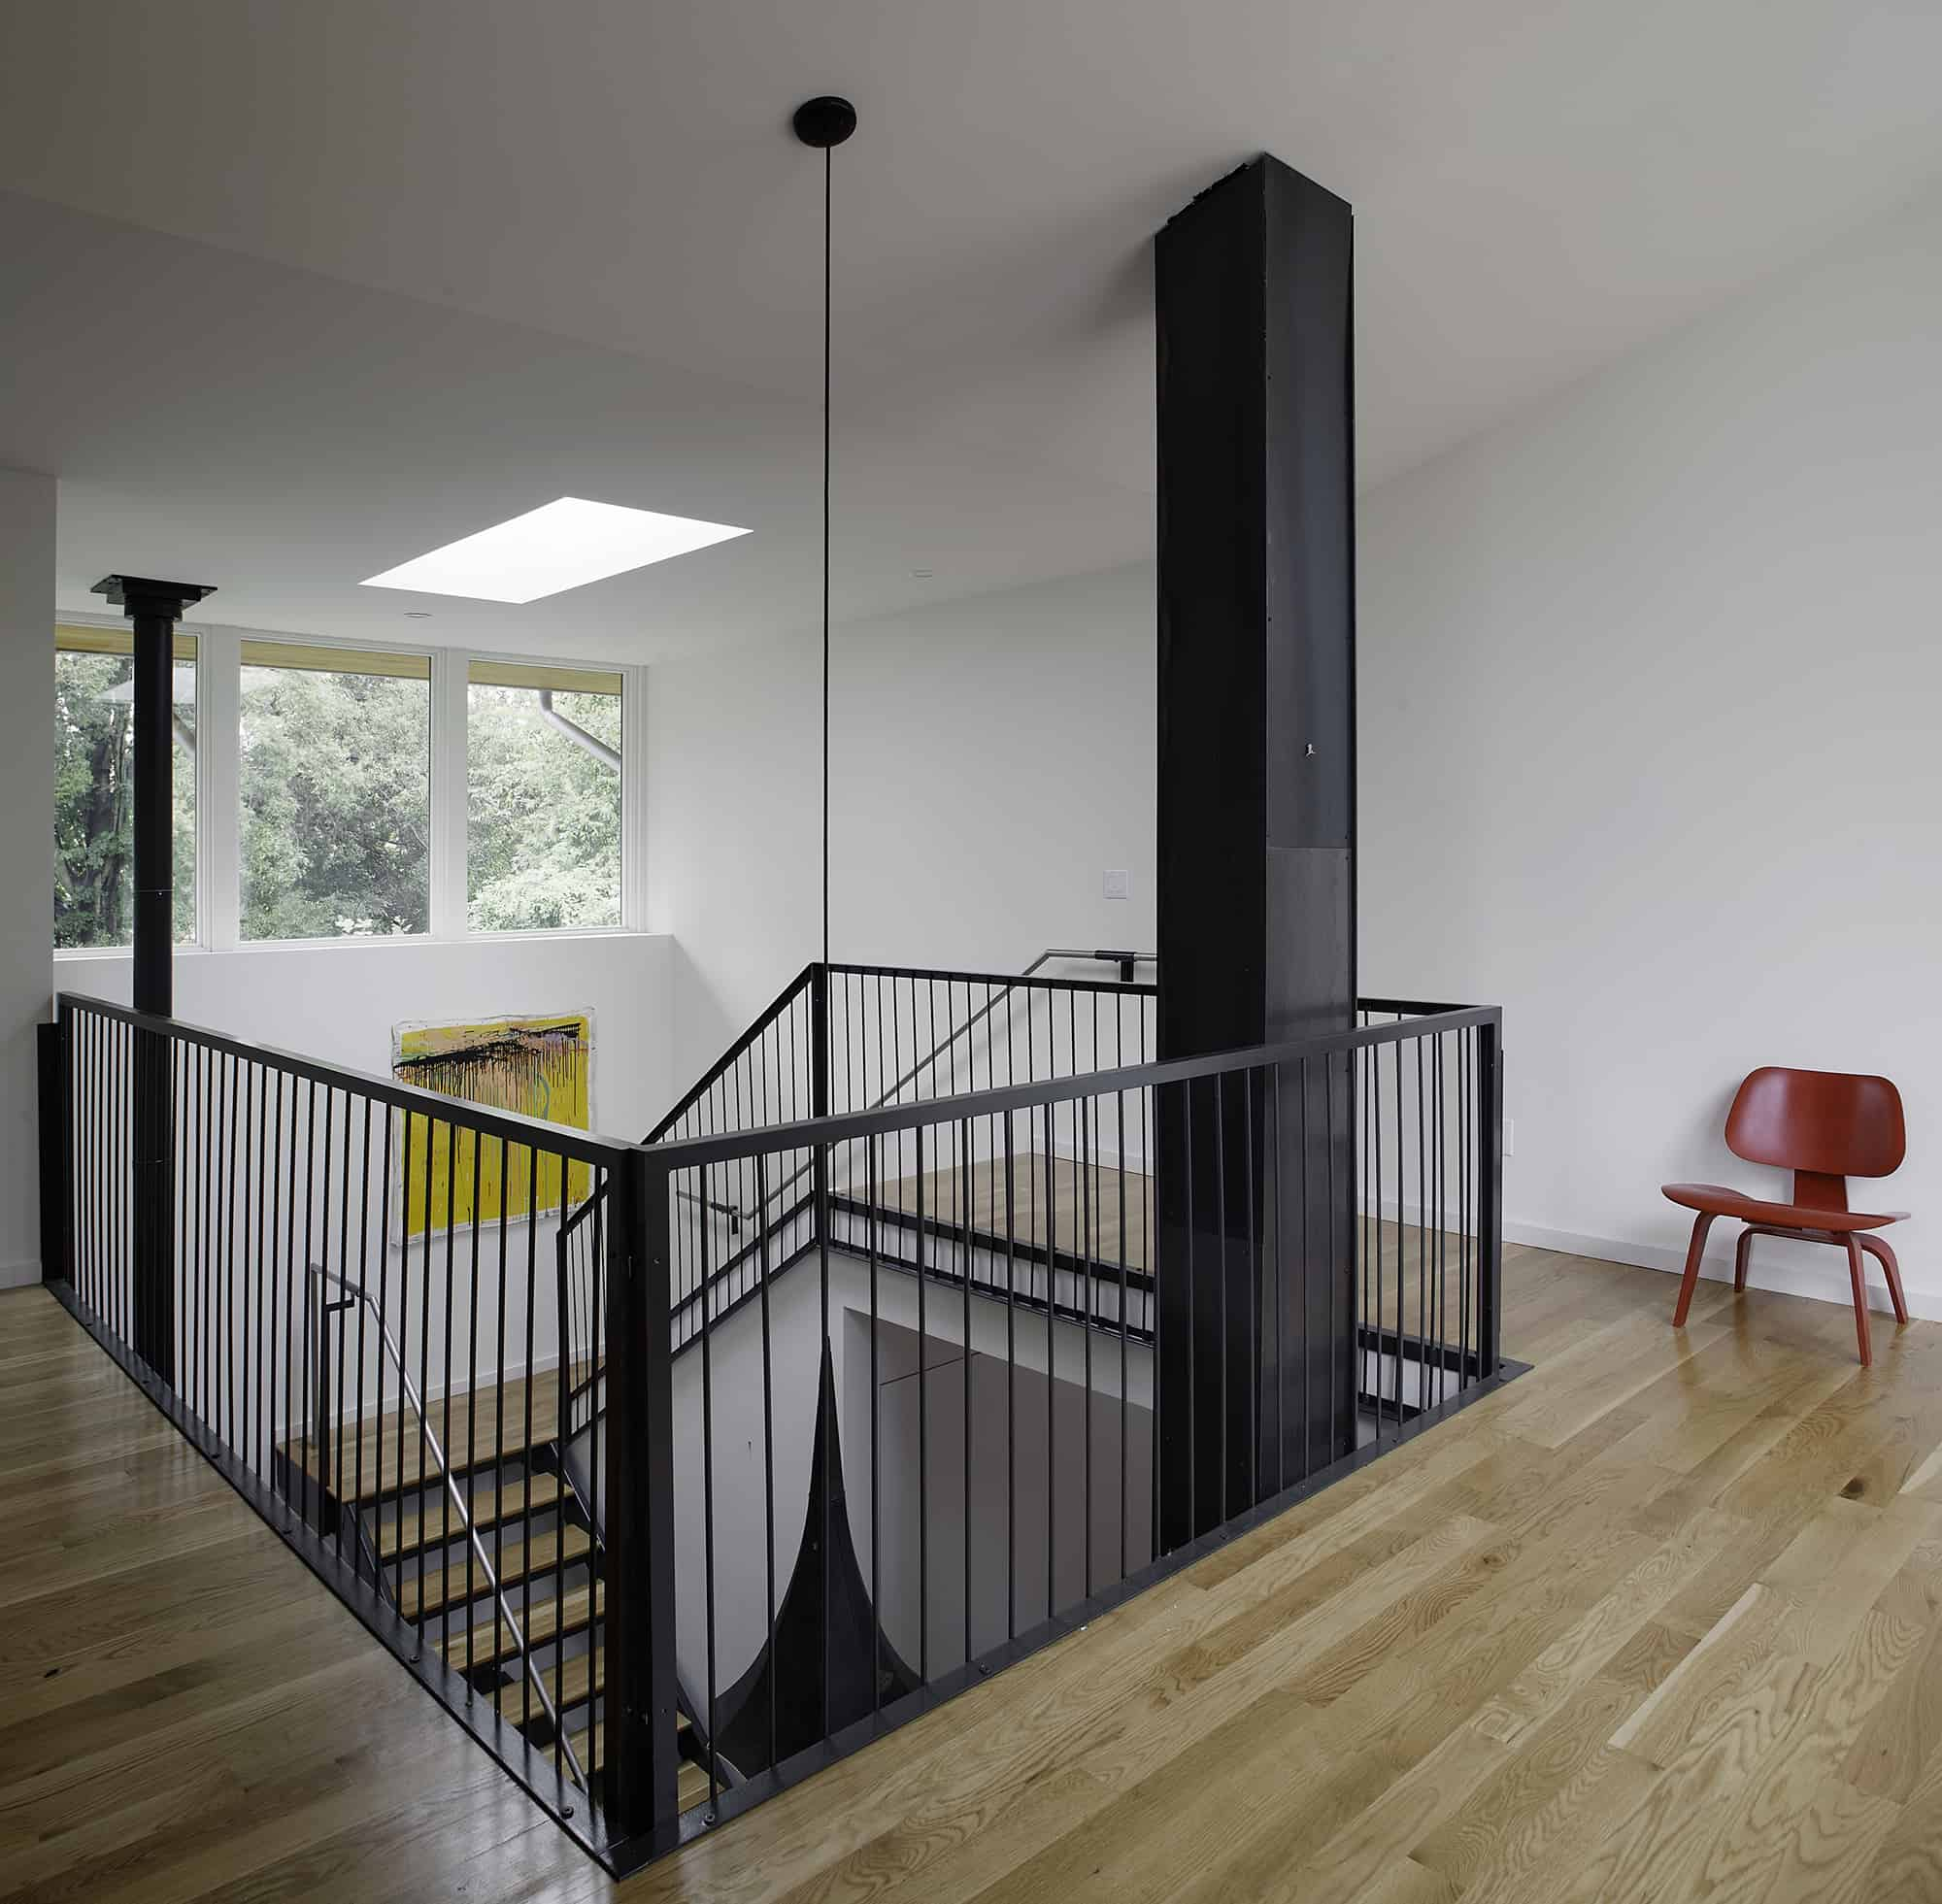 Home with 2 storey kitchen creates drama at mezzanine level for Architecture mezzanine